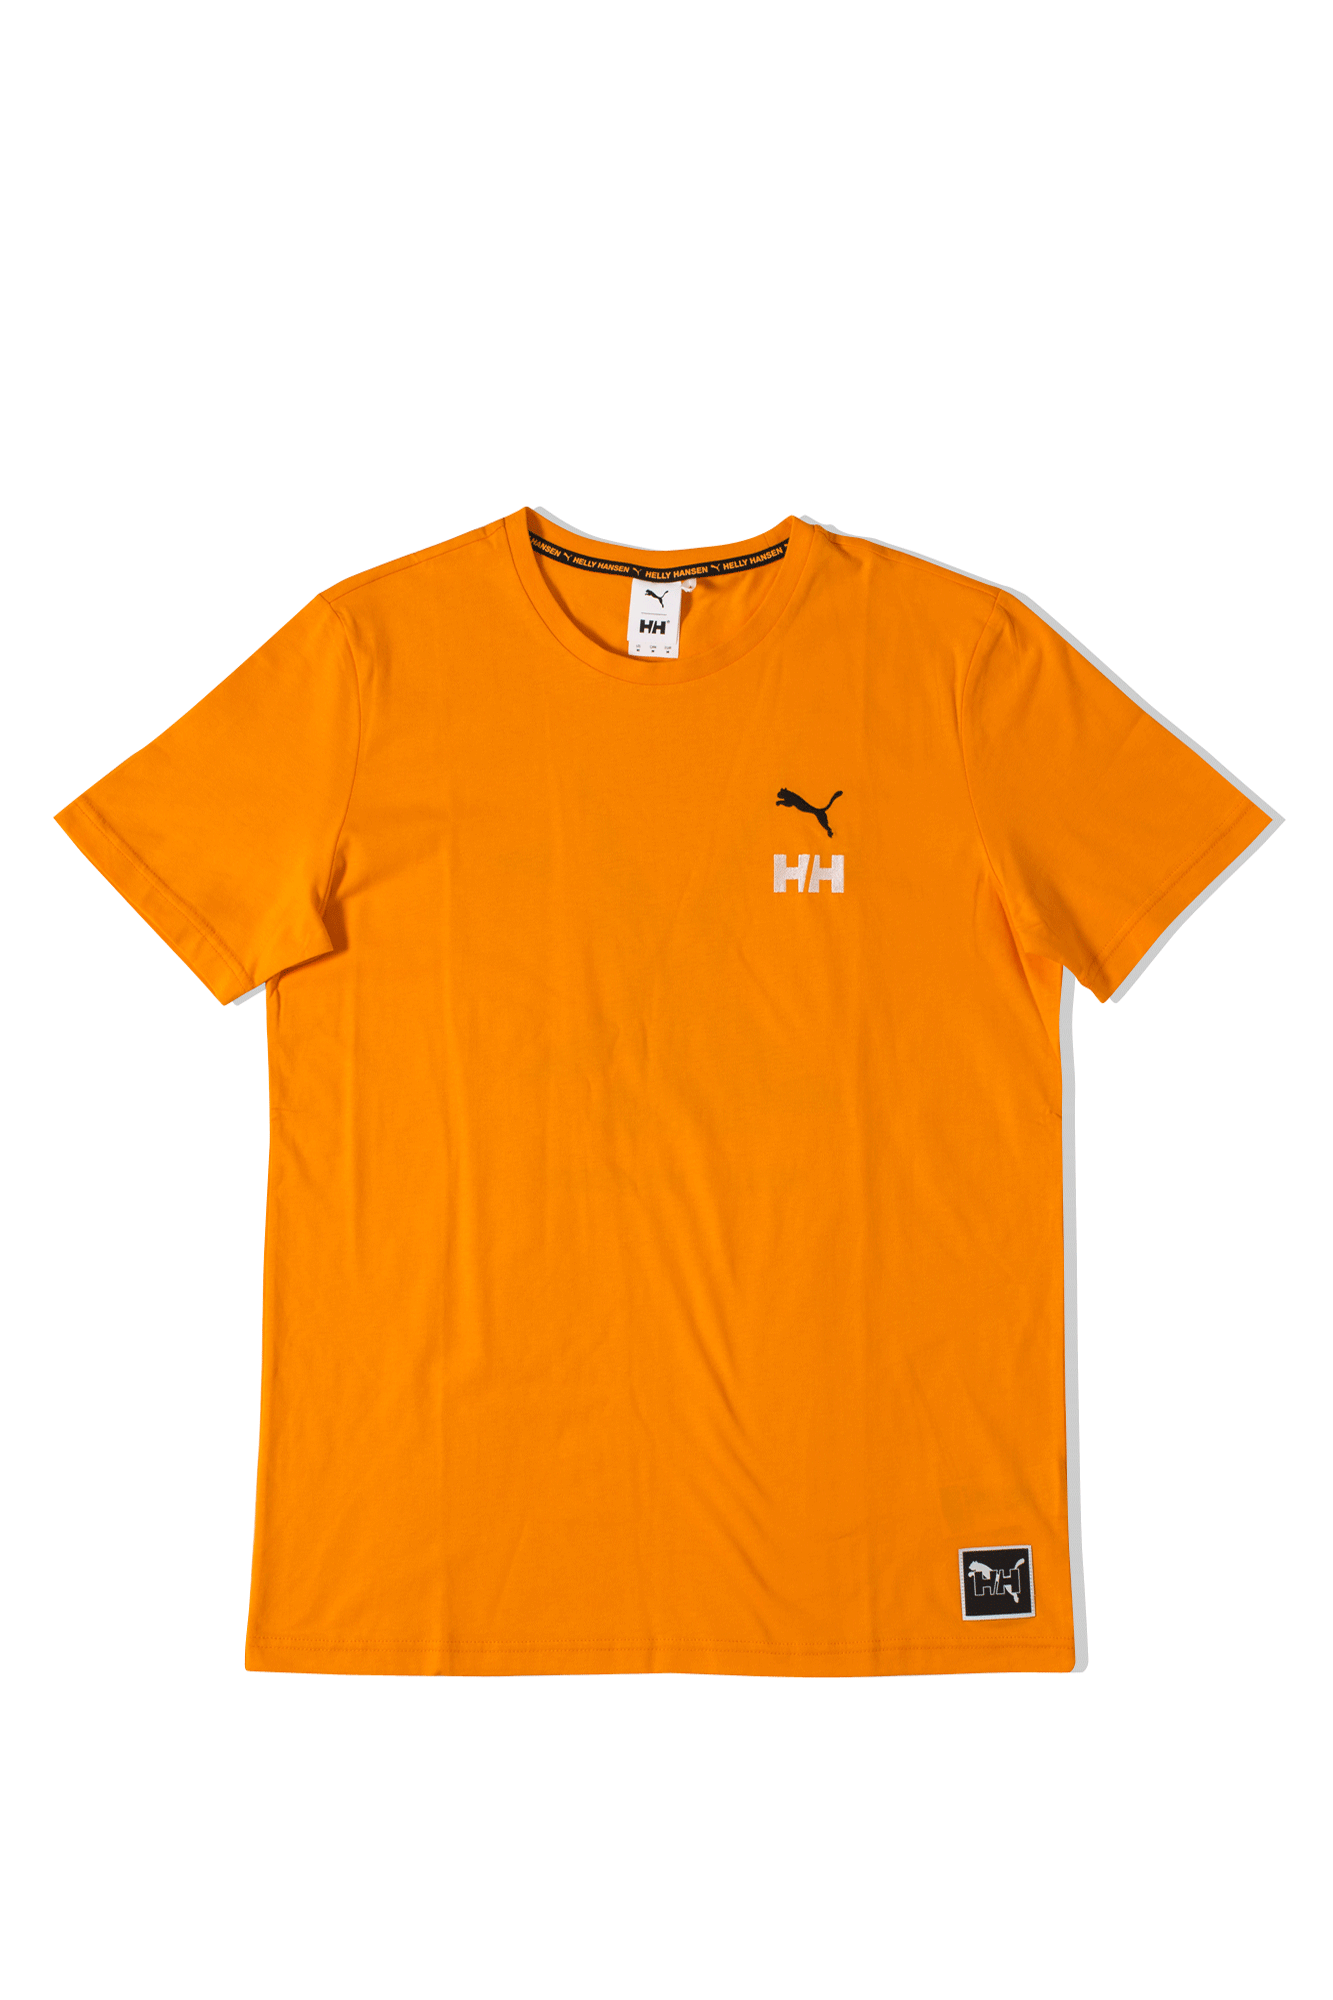 Tee x Helly Hansen Orange